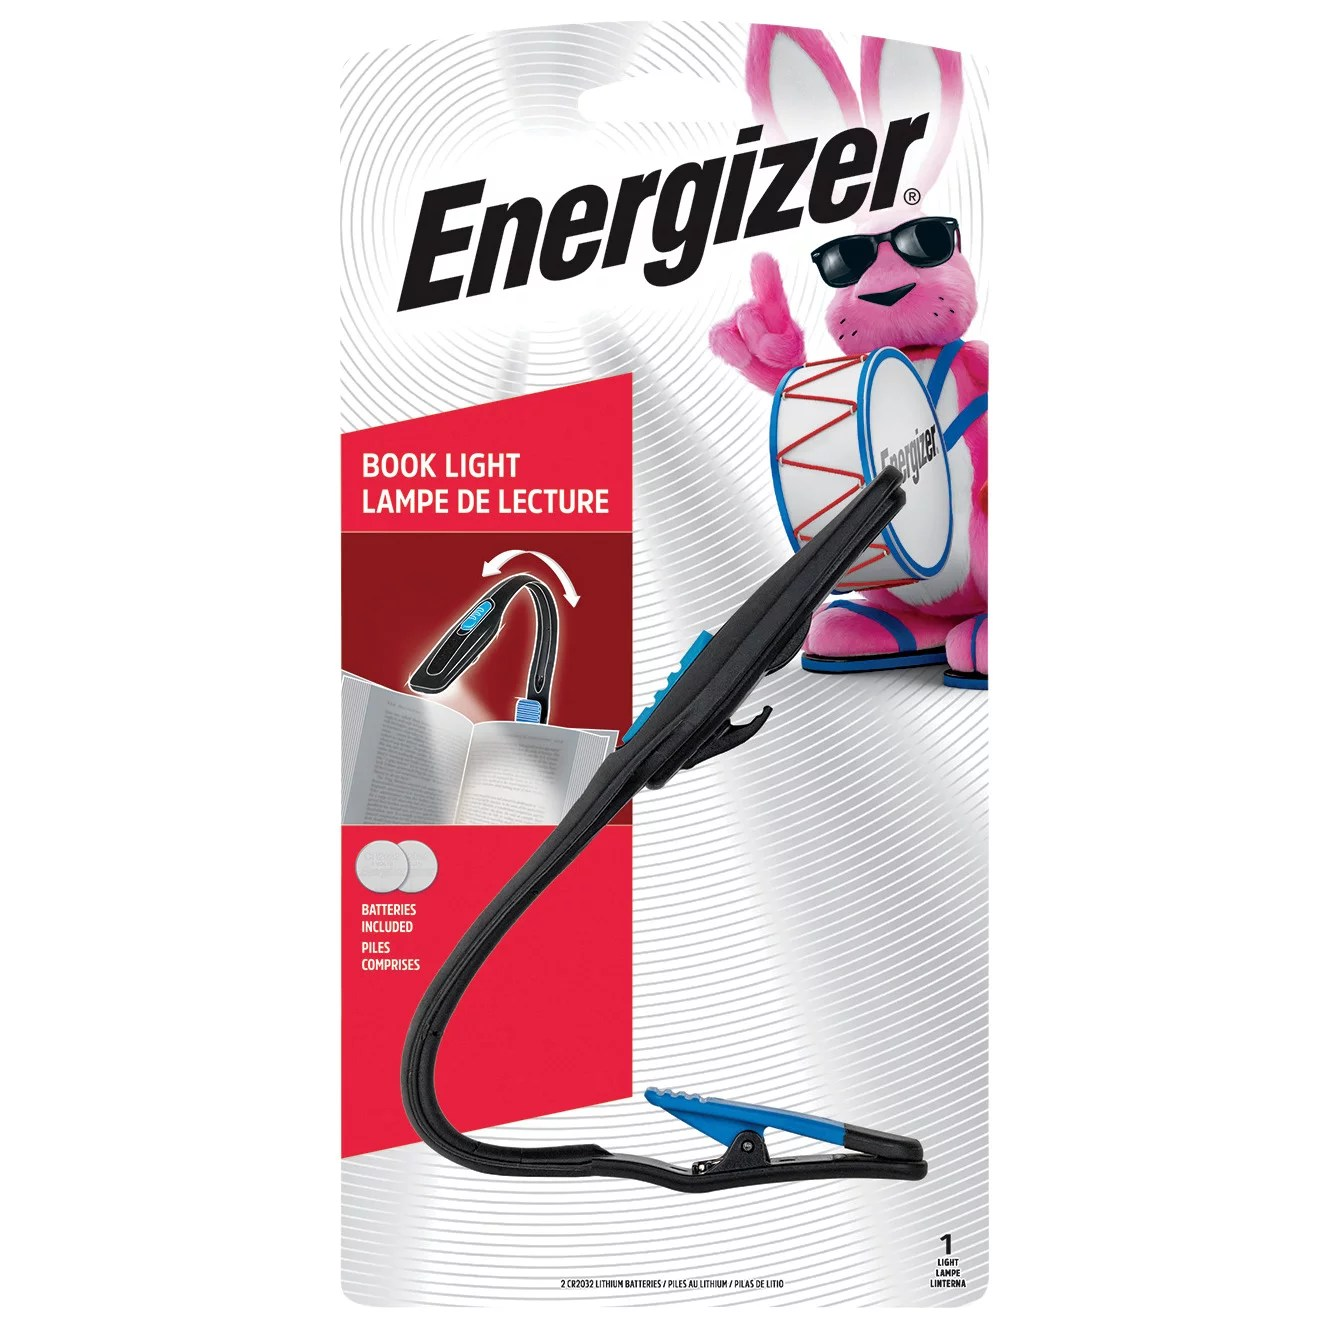 Energizer Led Flexible Clip Book Light Shop Lamps Lights At H E B